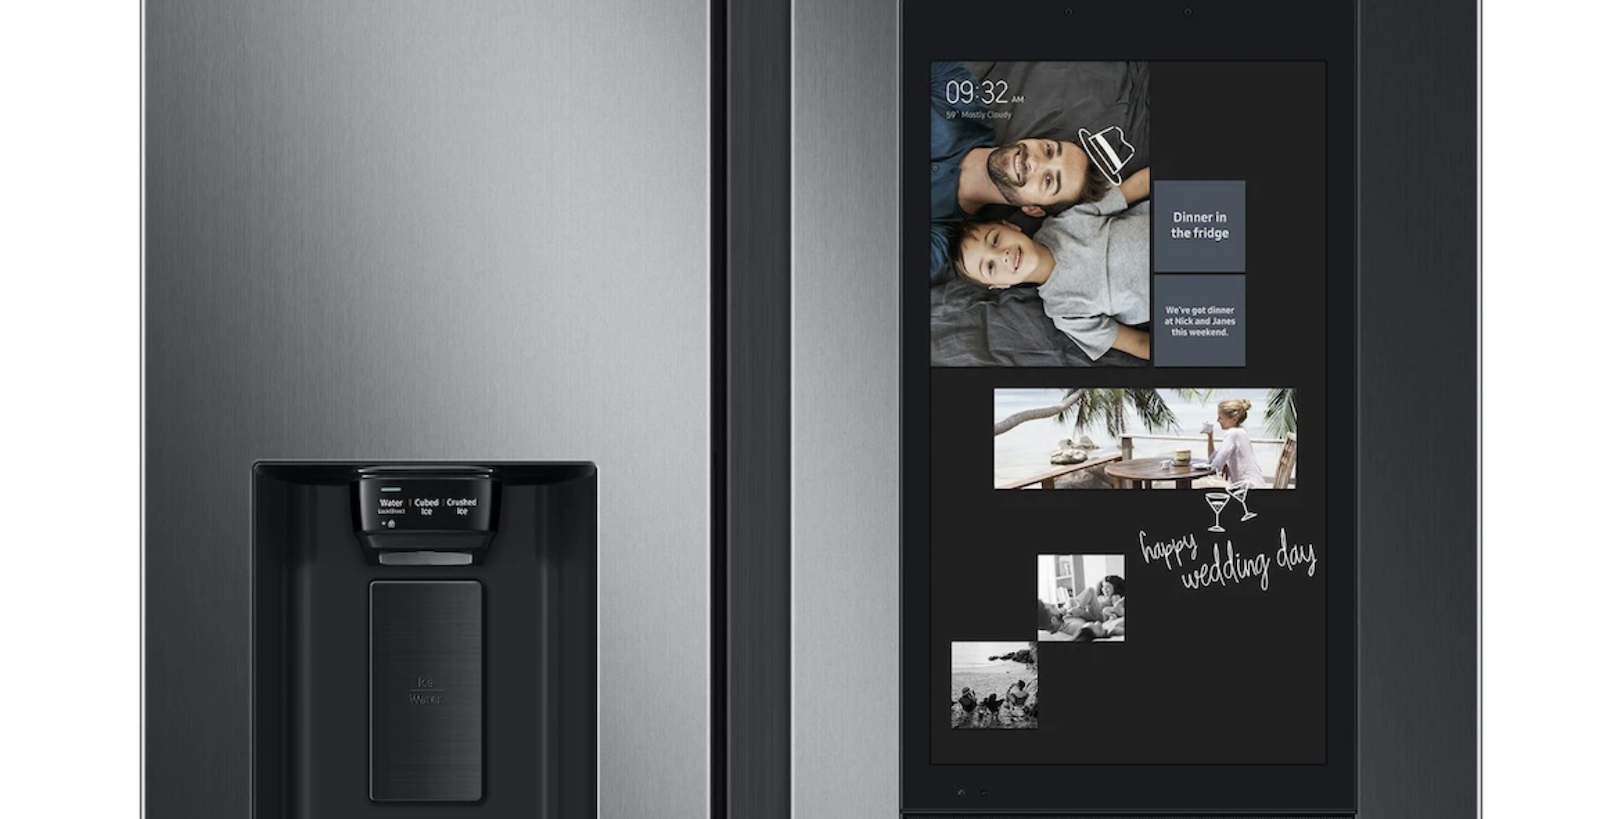 Close-up view of Samsung's Family Hub refrigerator door with screen and smart technology